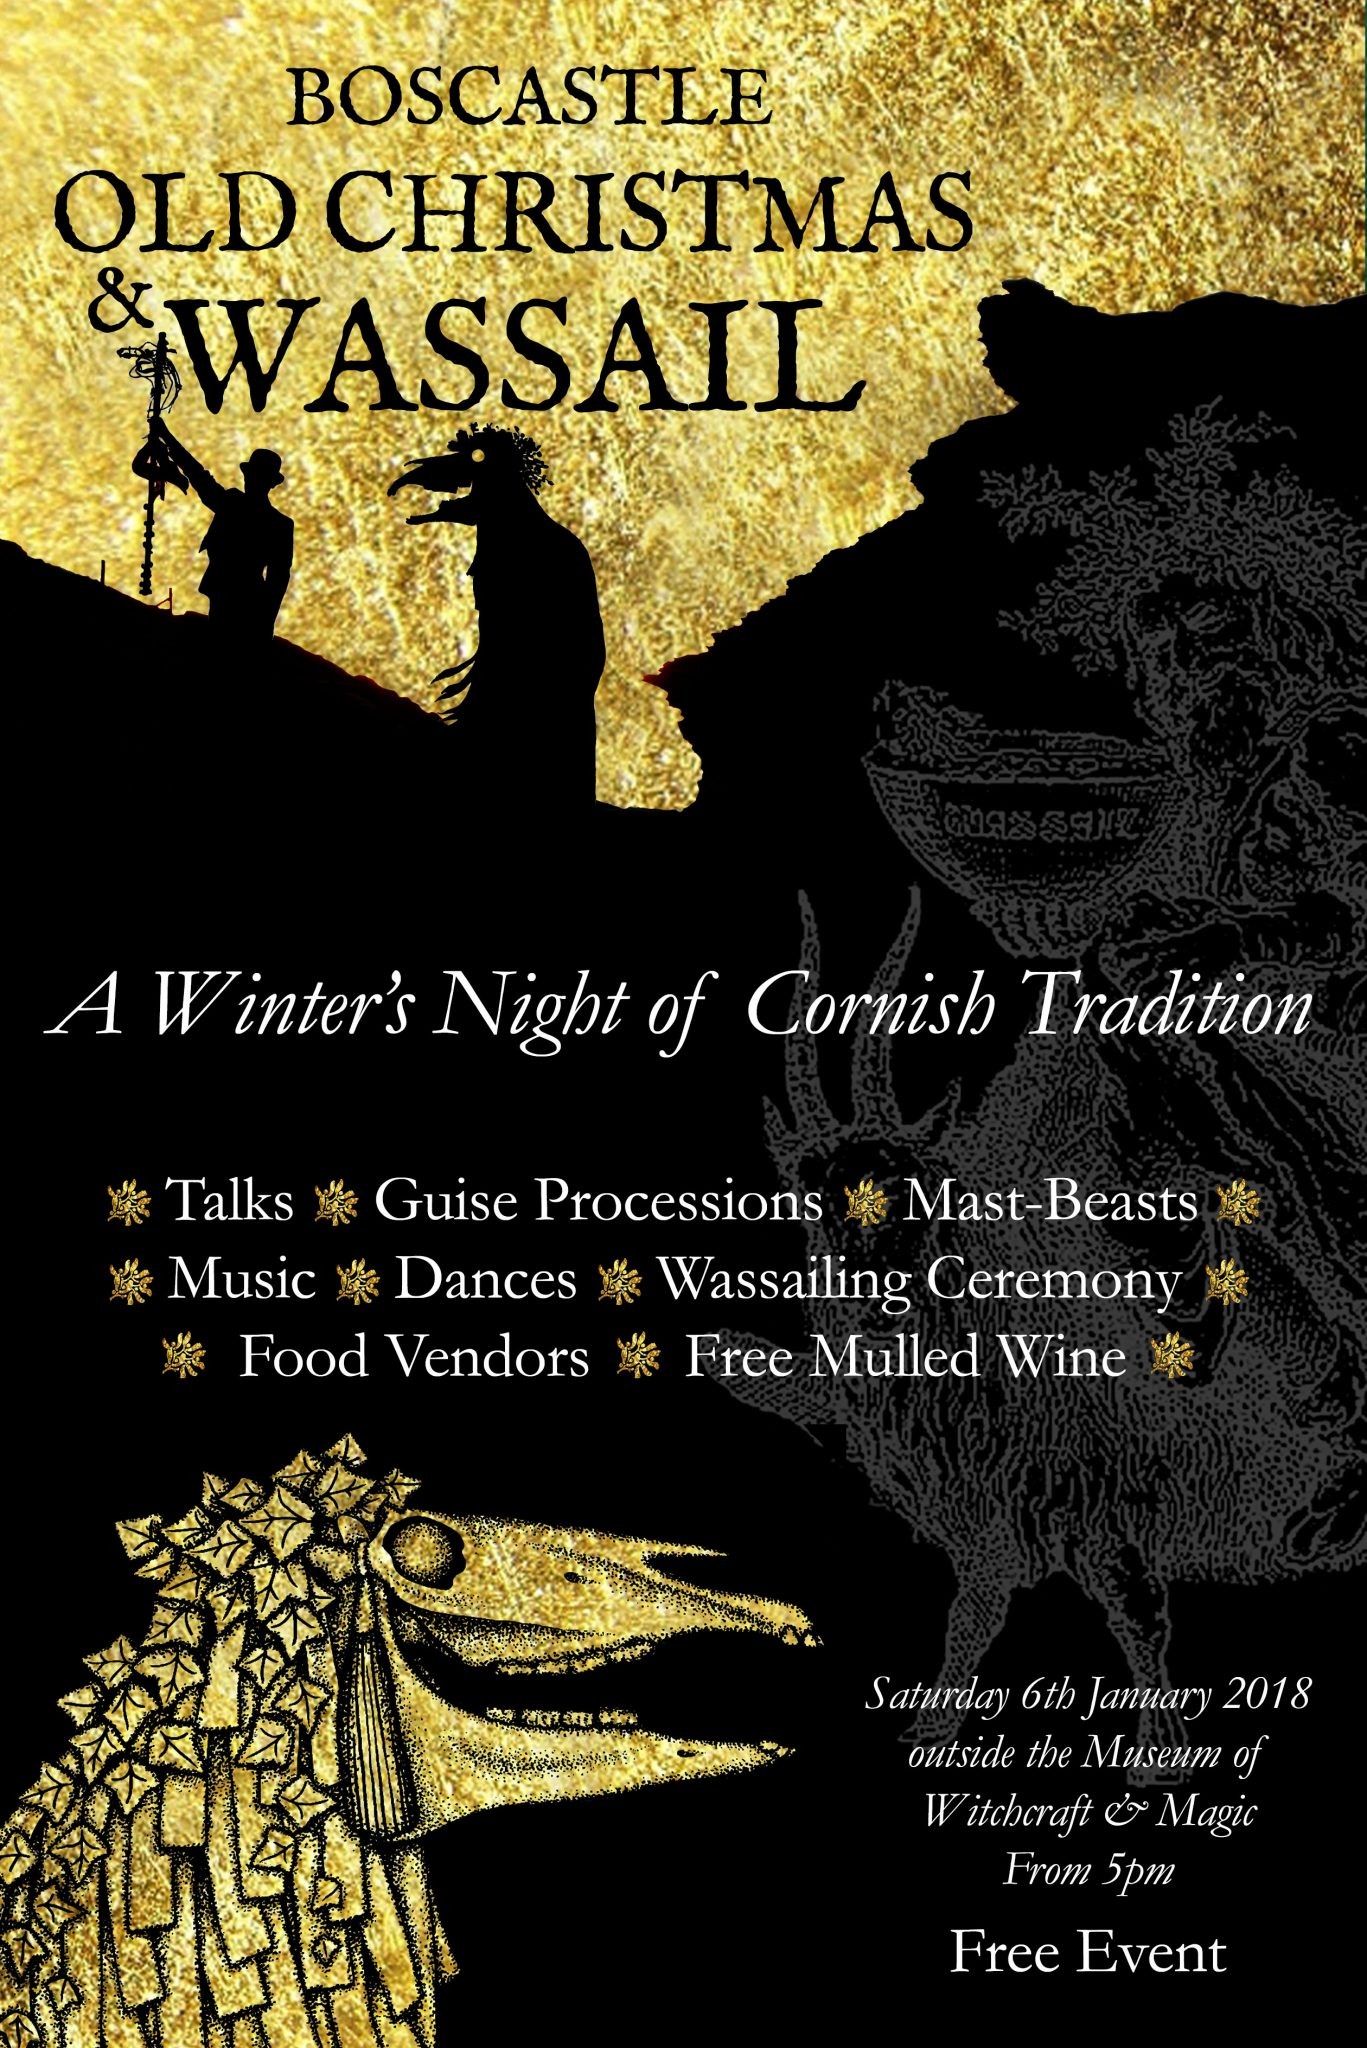 Boscastle Old Christmas and Wassail January 6th 2018 - Museum of ...